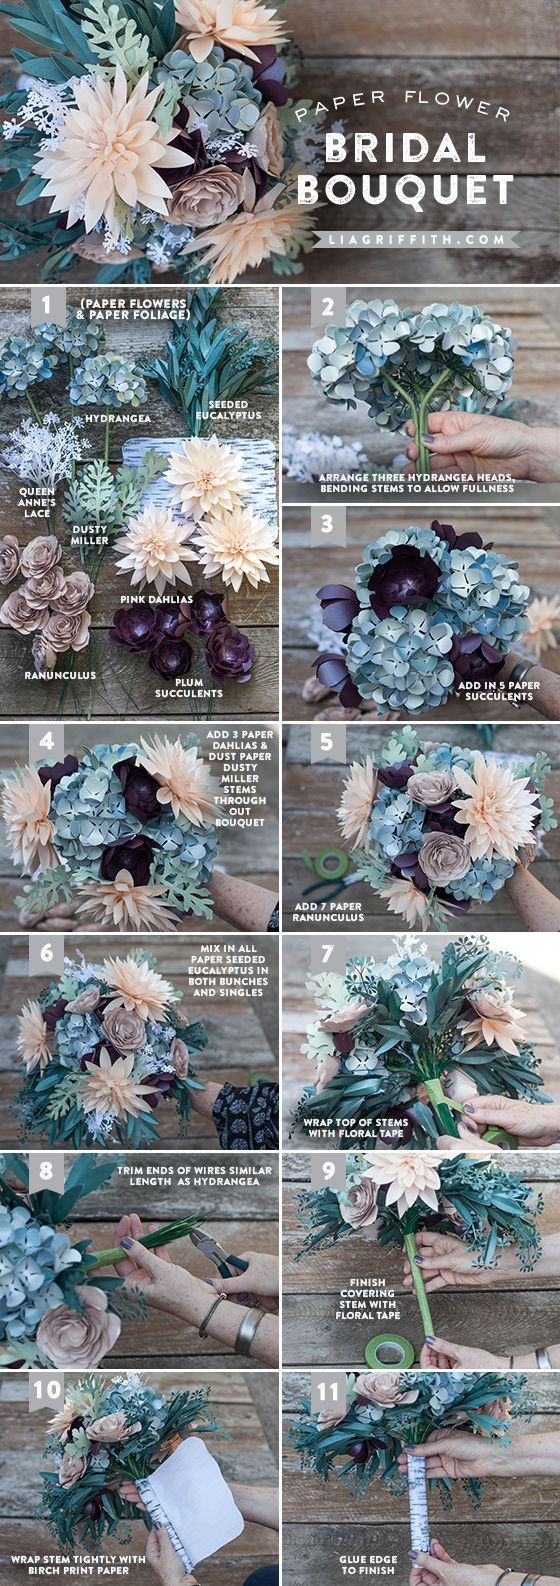 Paper flower bridal bouquet tutorial @LiaGriffith.com